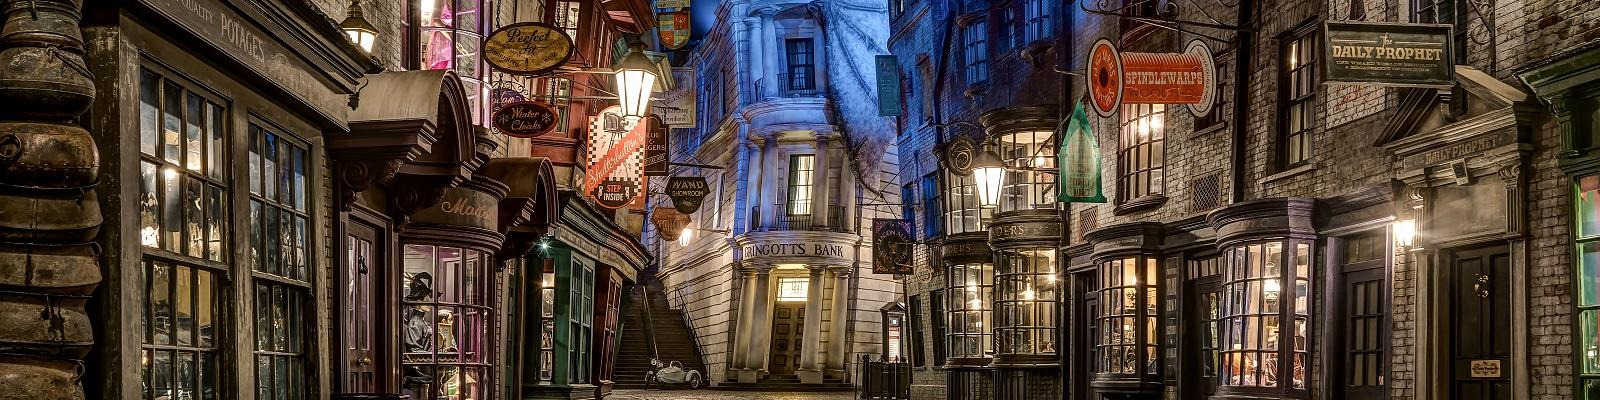 Diagon Alley at The Wizarding World of Harry Potter, Universal's Islands Of Adventure